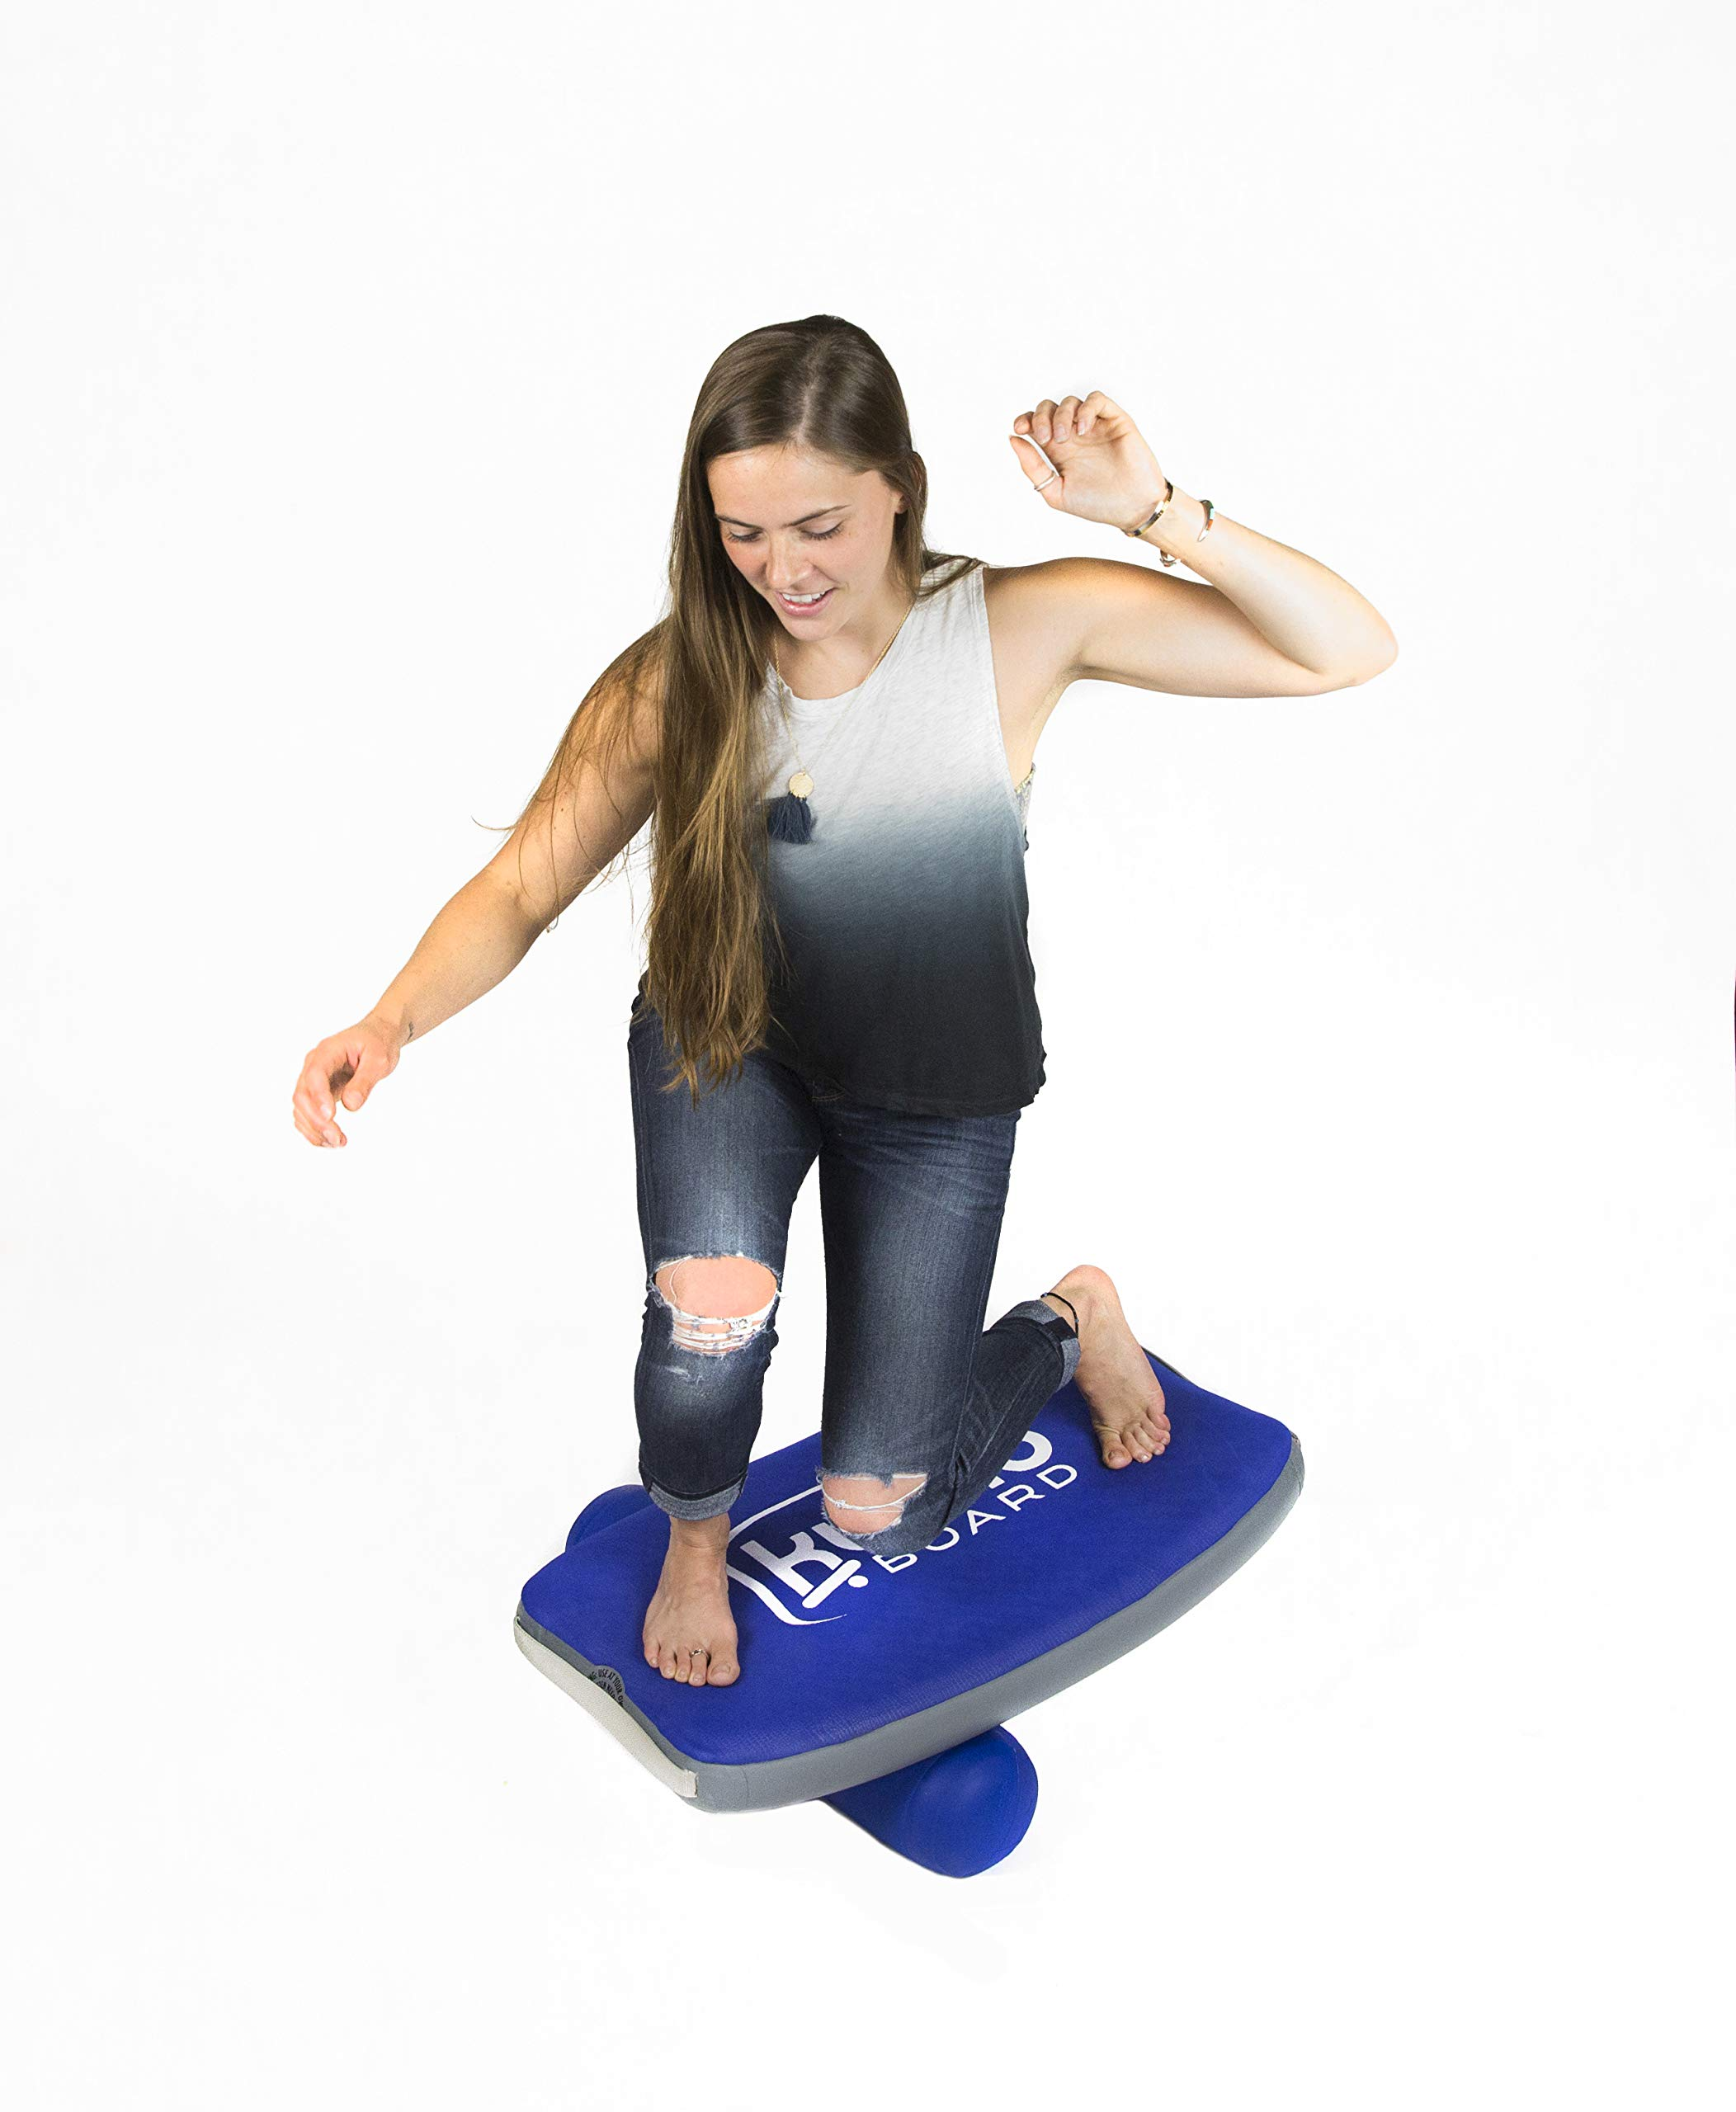 KUMO Inflatable Balance Board for Surf Training, Exercise, Physical Therapy, Standing Desk & Kids - Balancing Rocker Boards with Roller - Soft Inflatable Surfing Trainer Improves Balance & Strength